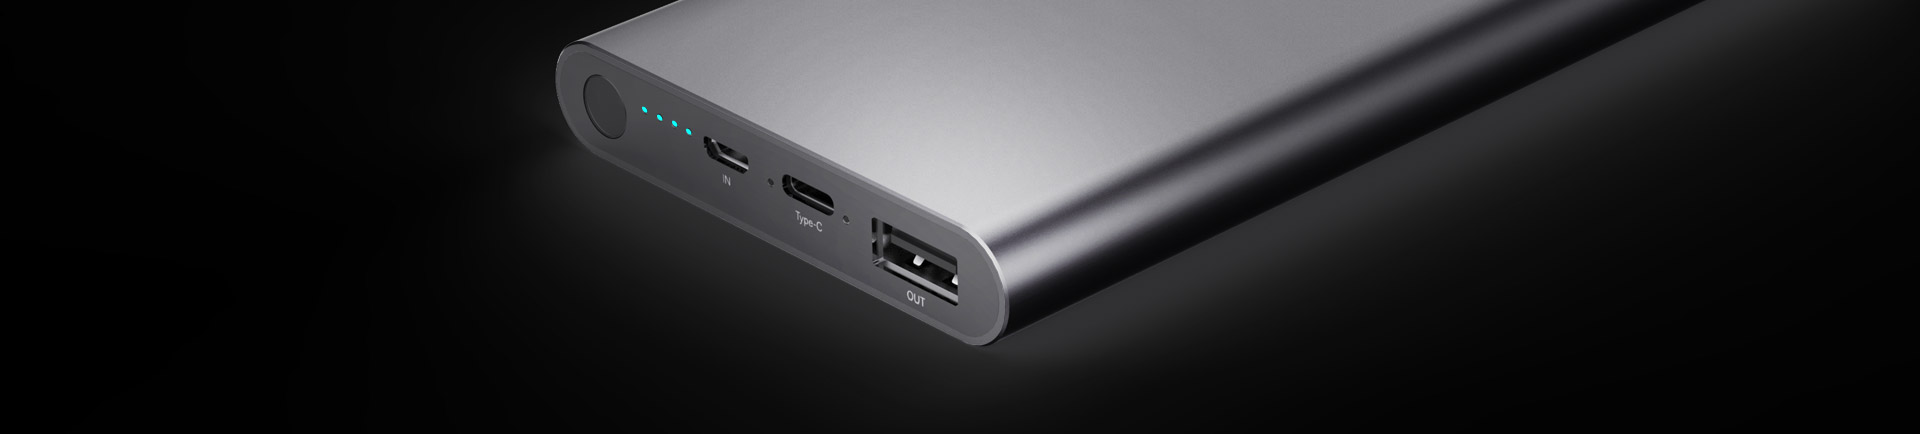 10000mAh Power Bank with Type-C